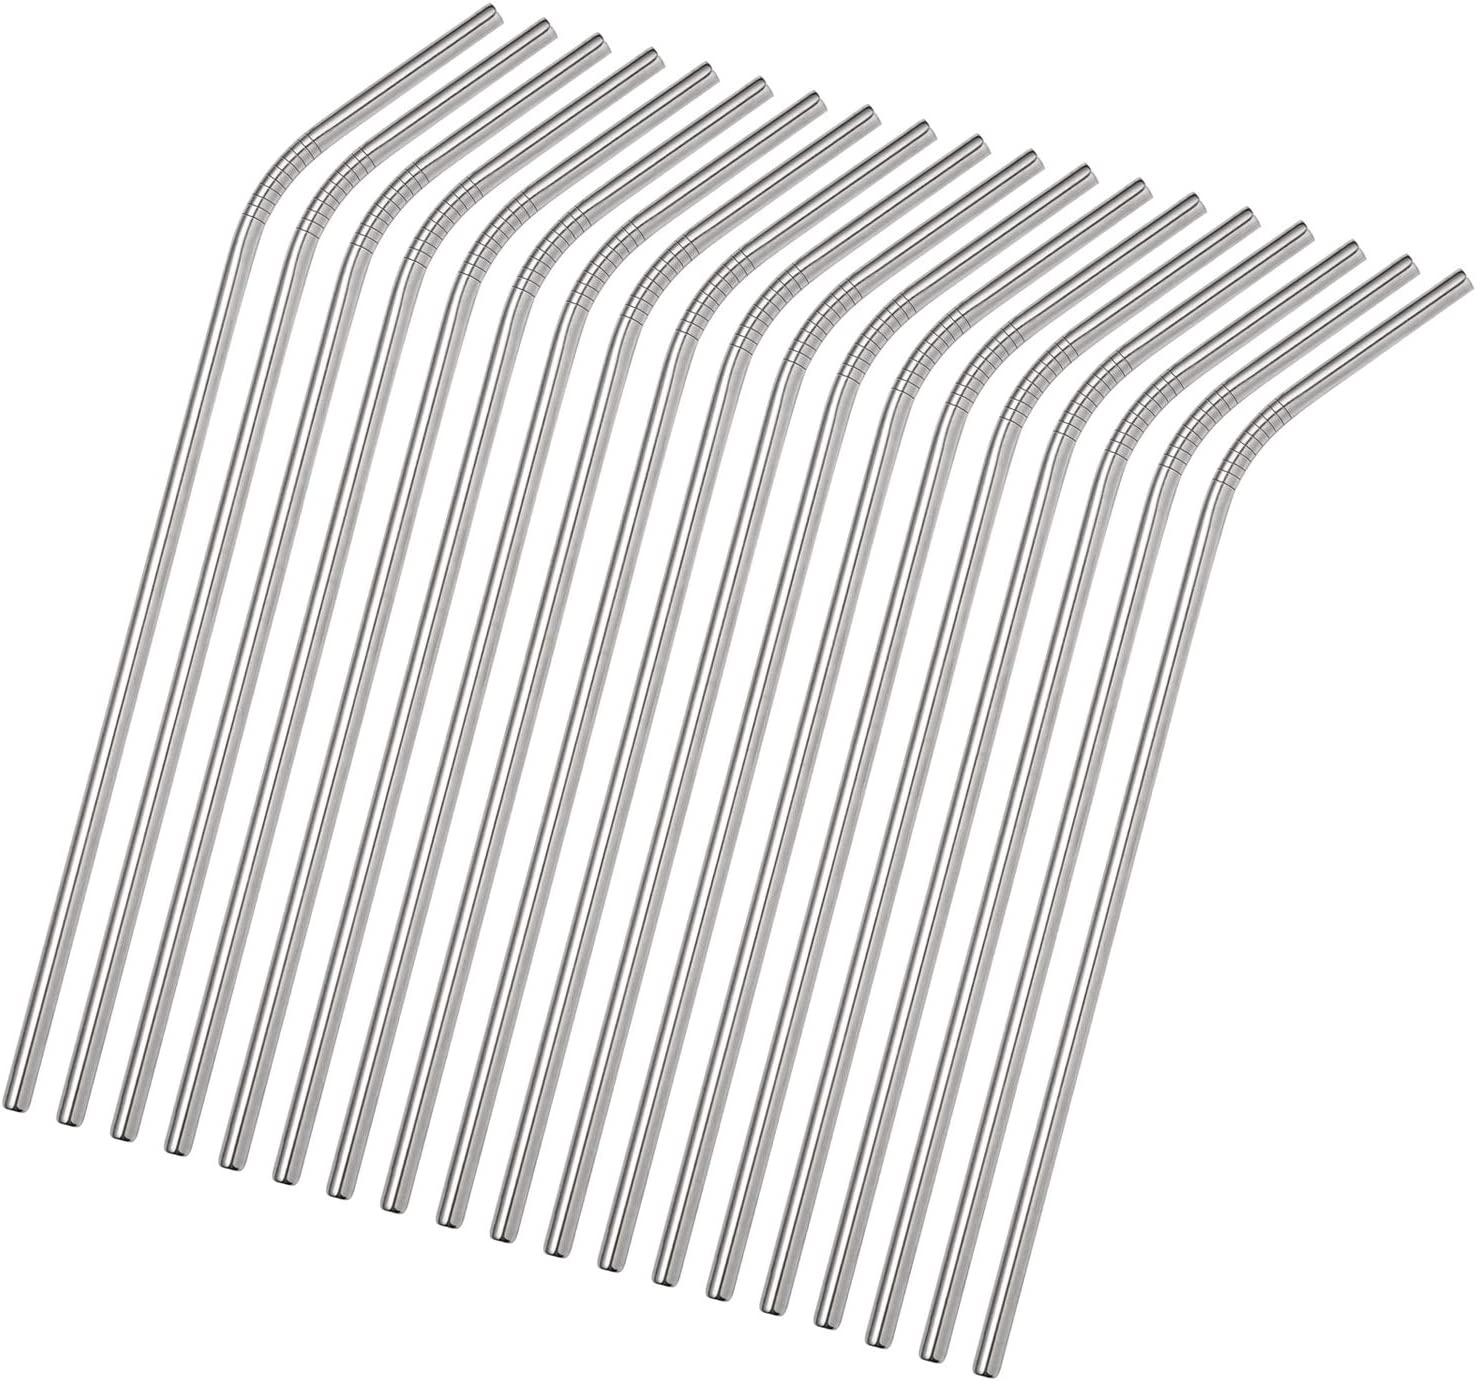 ColorStraw 50PCS Reusable Metal Straws Bulk.8.5 Inch Stainless Steel Drinking Straws in Bulk For Wholesale.Curved Straight Straws for 20oz Tumblers Yeti (50Pcs All Bent Silver-8.5